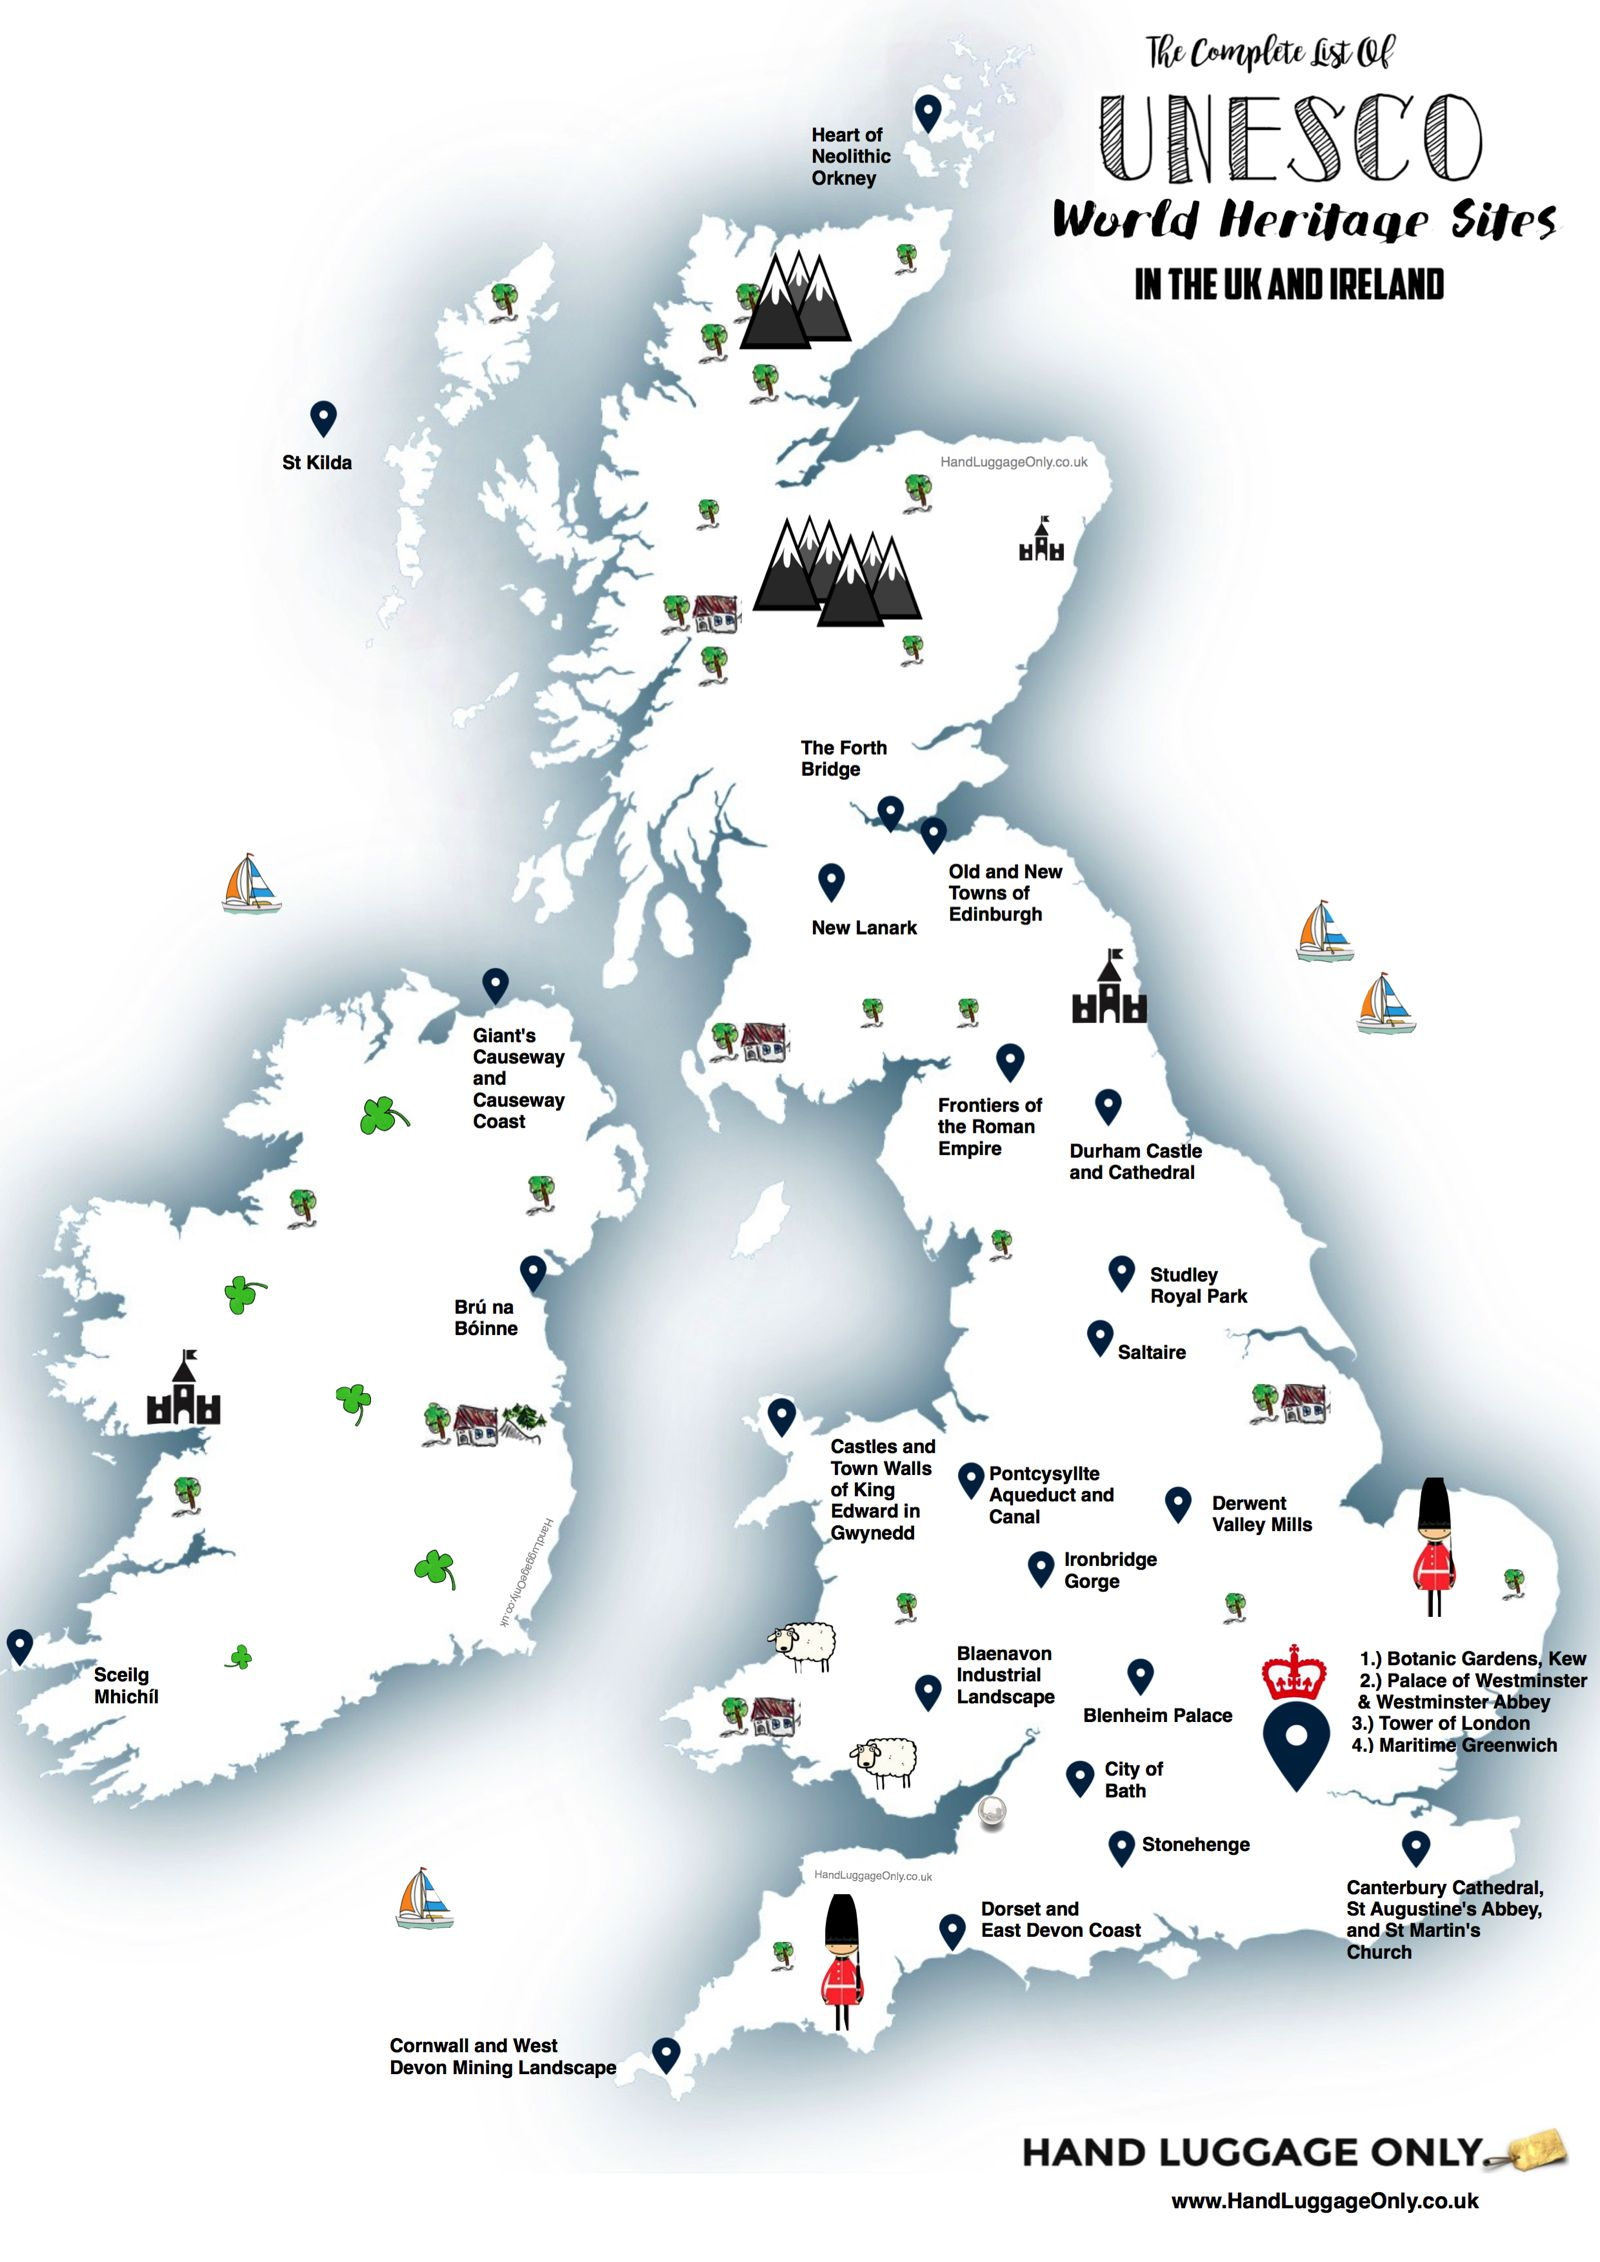 This map shows you where to find every unesco world heritage sites unesco world heritage sites in the uk and ireland gumiabroncs Gallery